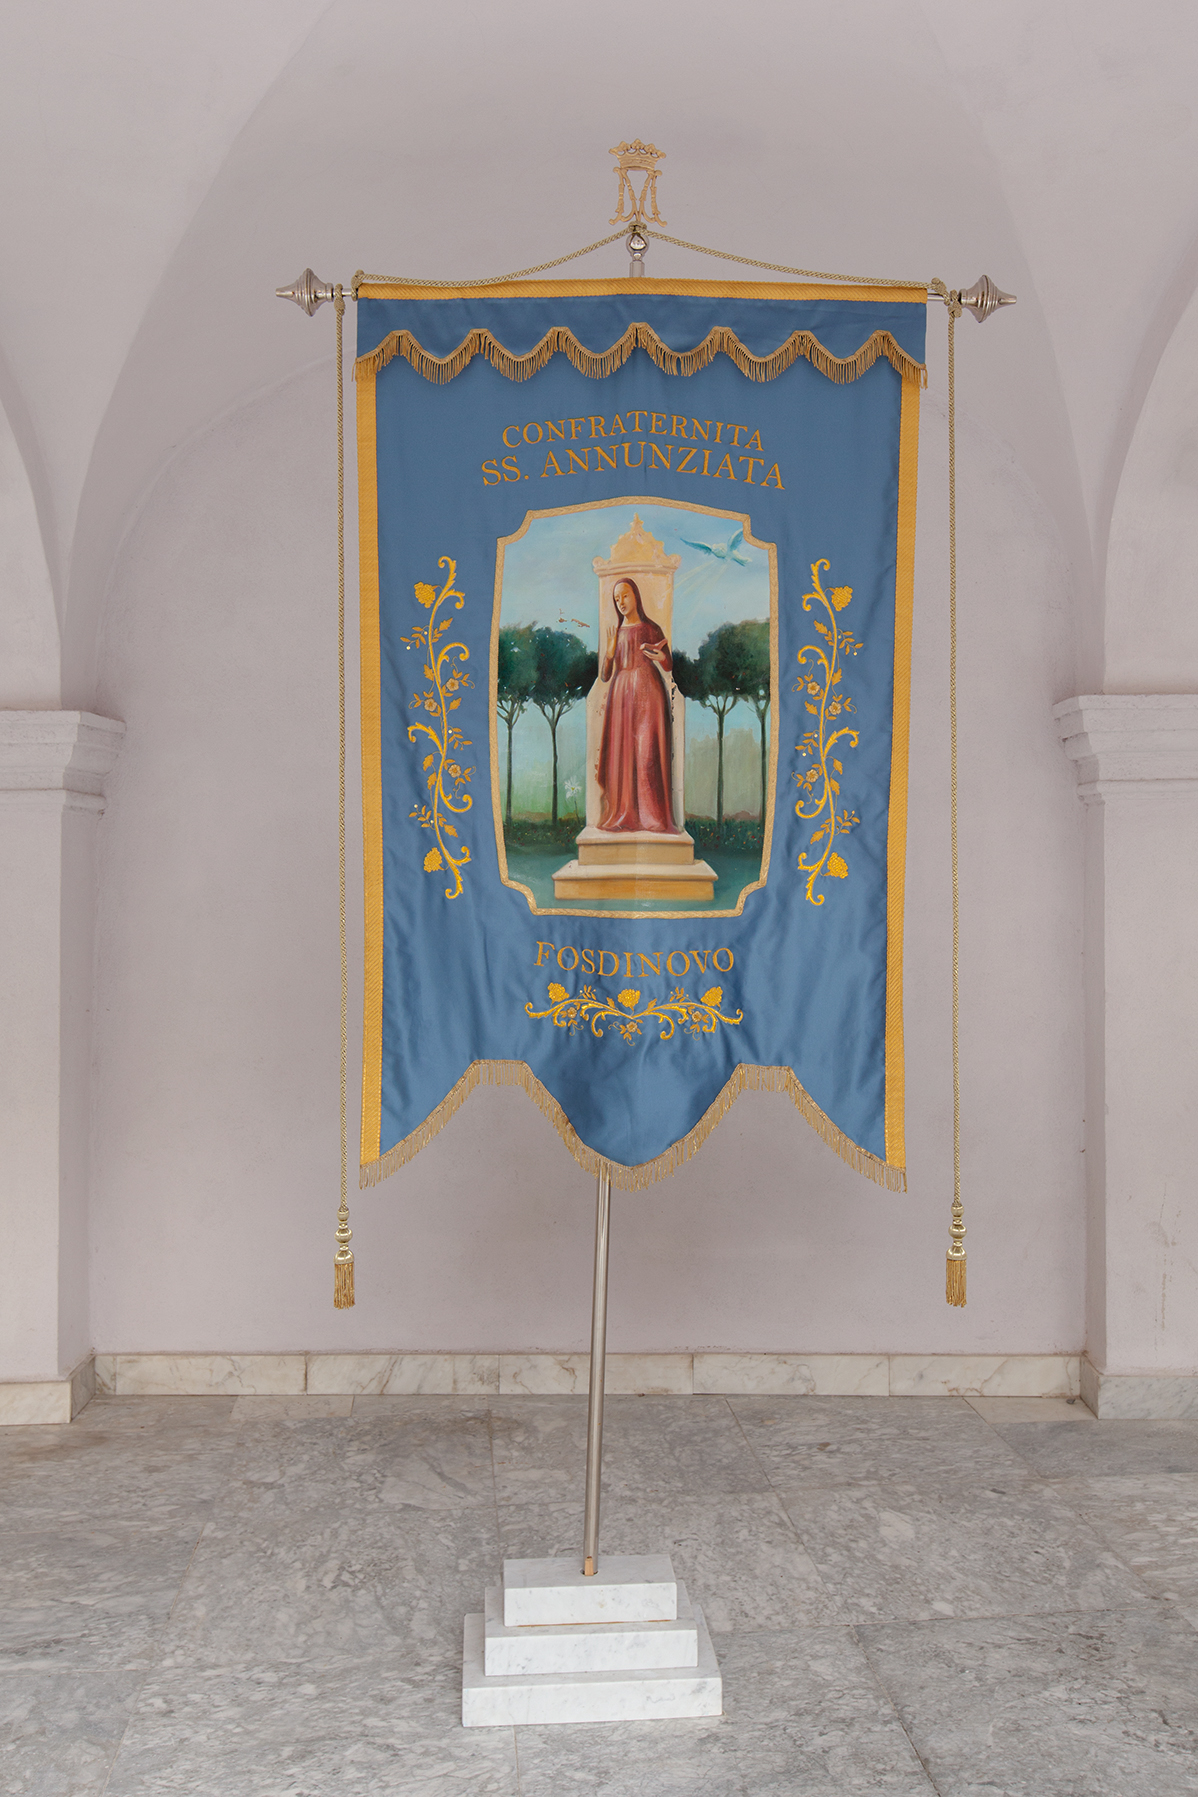 Banner of Fosdinovo's confraternity